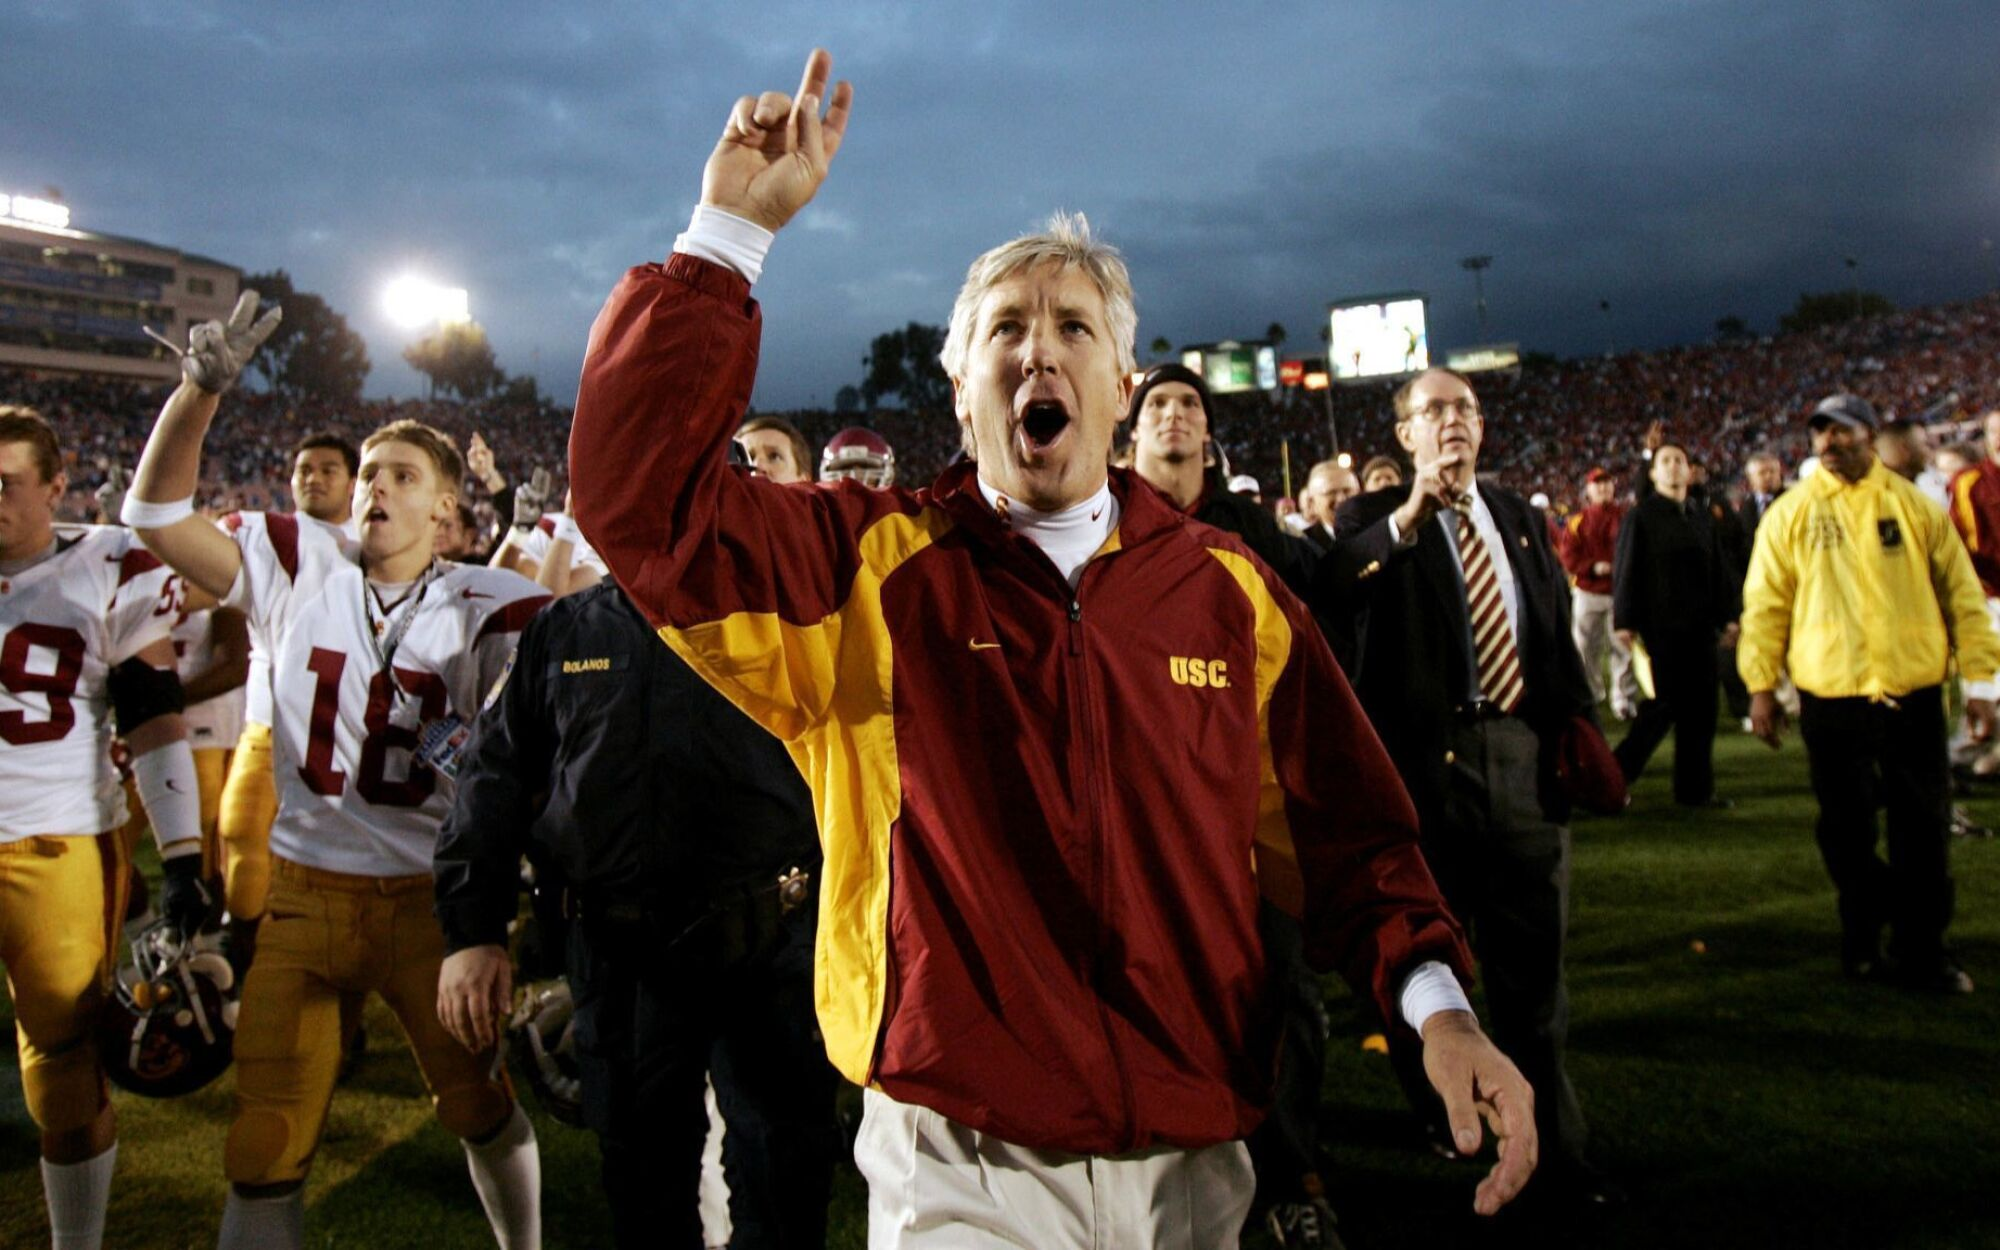 USC coach Pete Carroll celebrates with members of his team after defeating UCLA at the Rose Bowl in 2004.